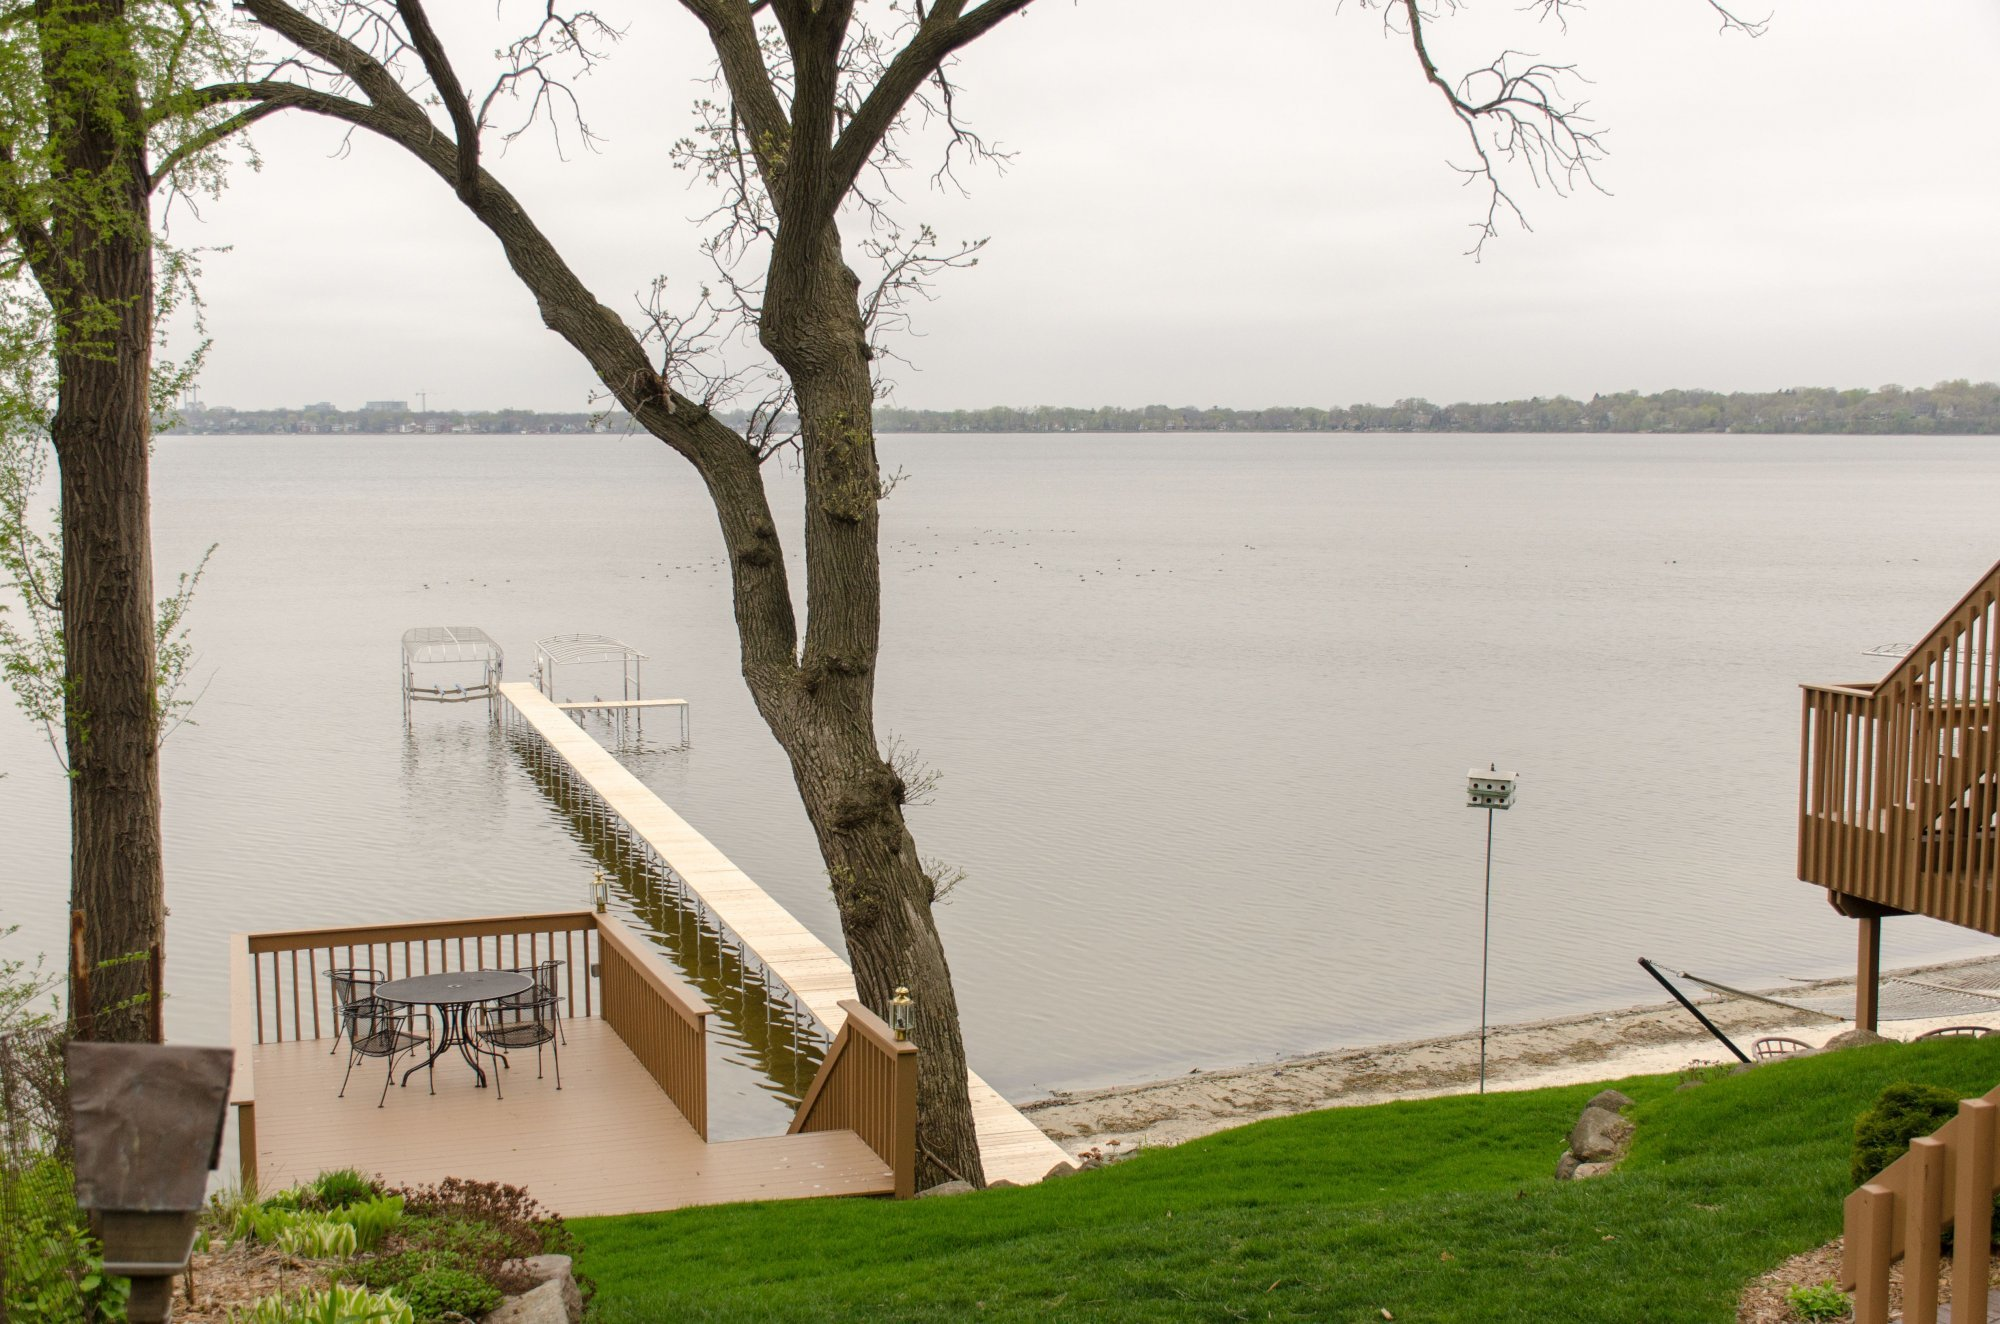 View of Lake Monona from Waterford Bay Condos